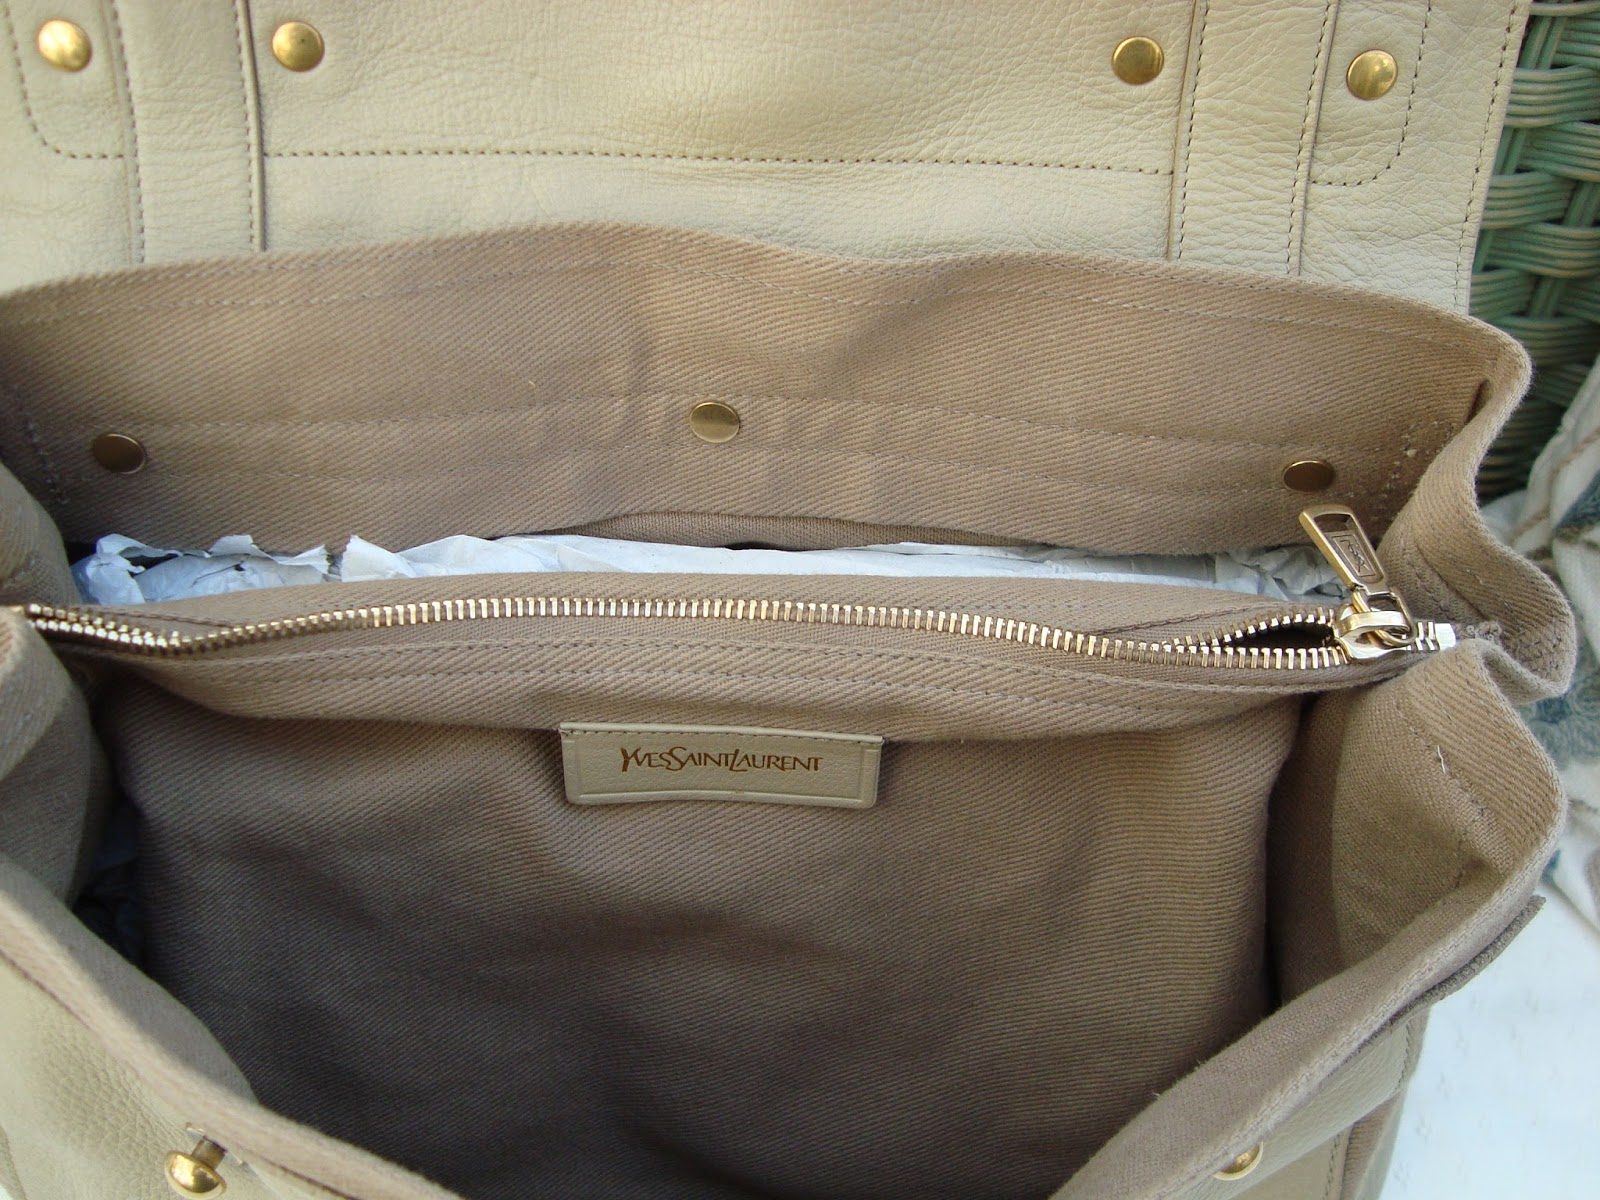 LSK COLLECTION FOR SALE: YSL MUSE TWO BEIGE ECRU LEATHER BAG